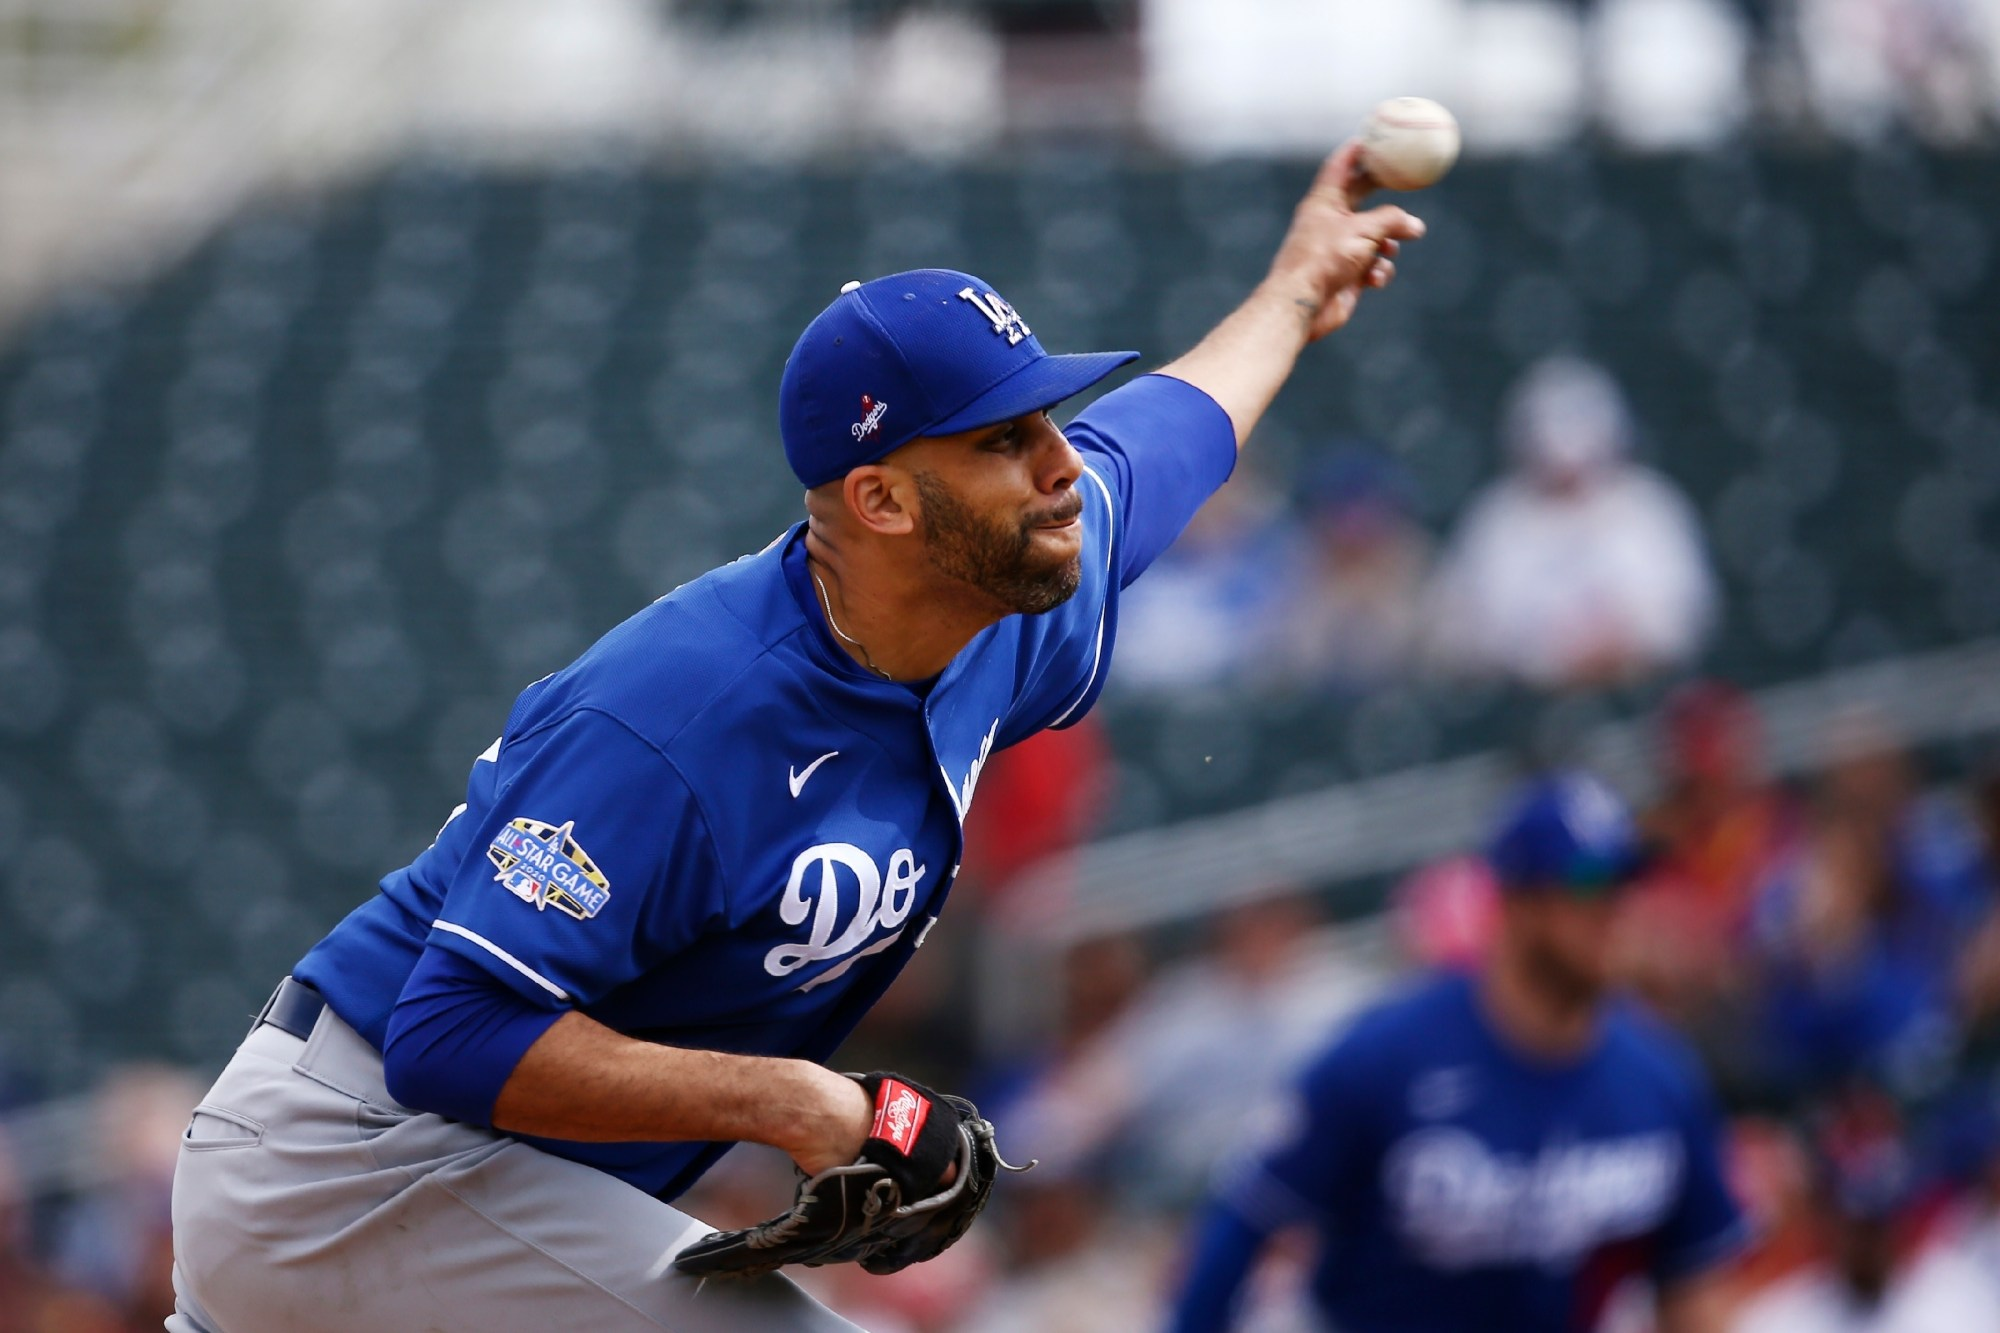 Los Angeles Dodgers starting pitcher David Price throws against the Cincinnati Reds during the first inning of a spring training baseball game in Goodyear, Arizona on March 2, 2020. (AP Photo/Ross D. Franklin, File)